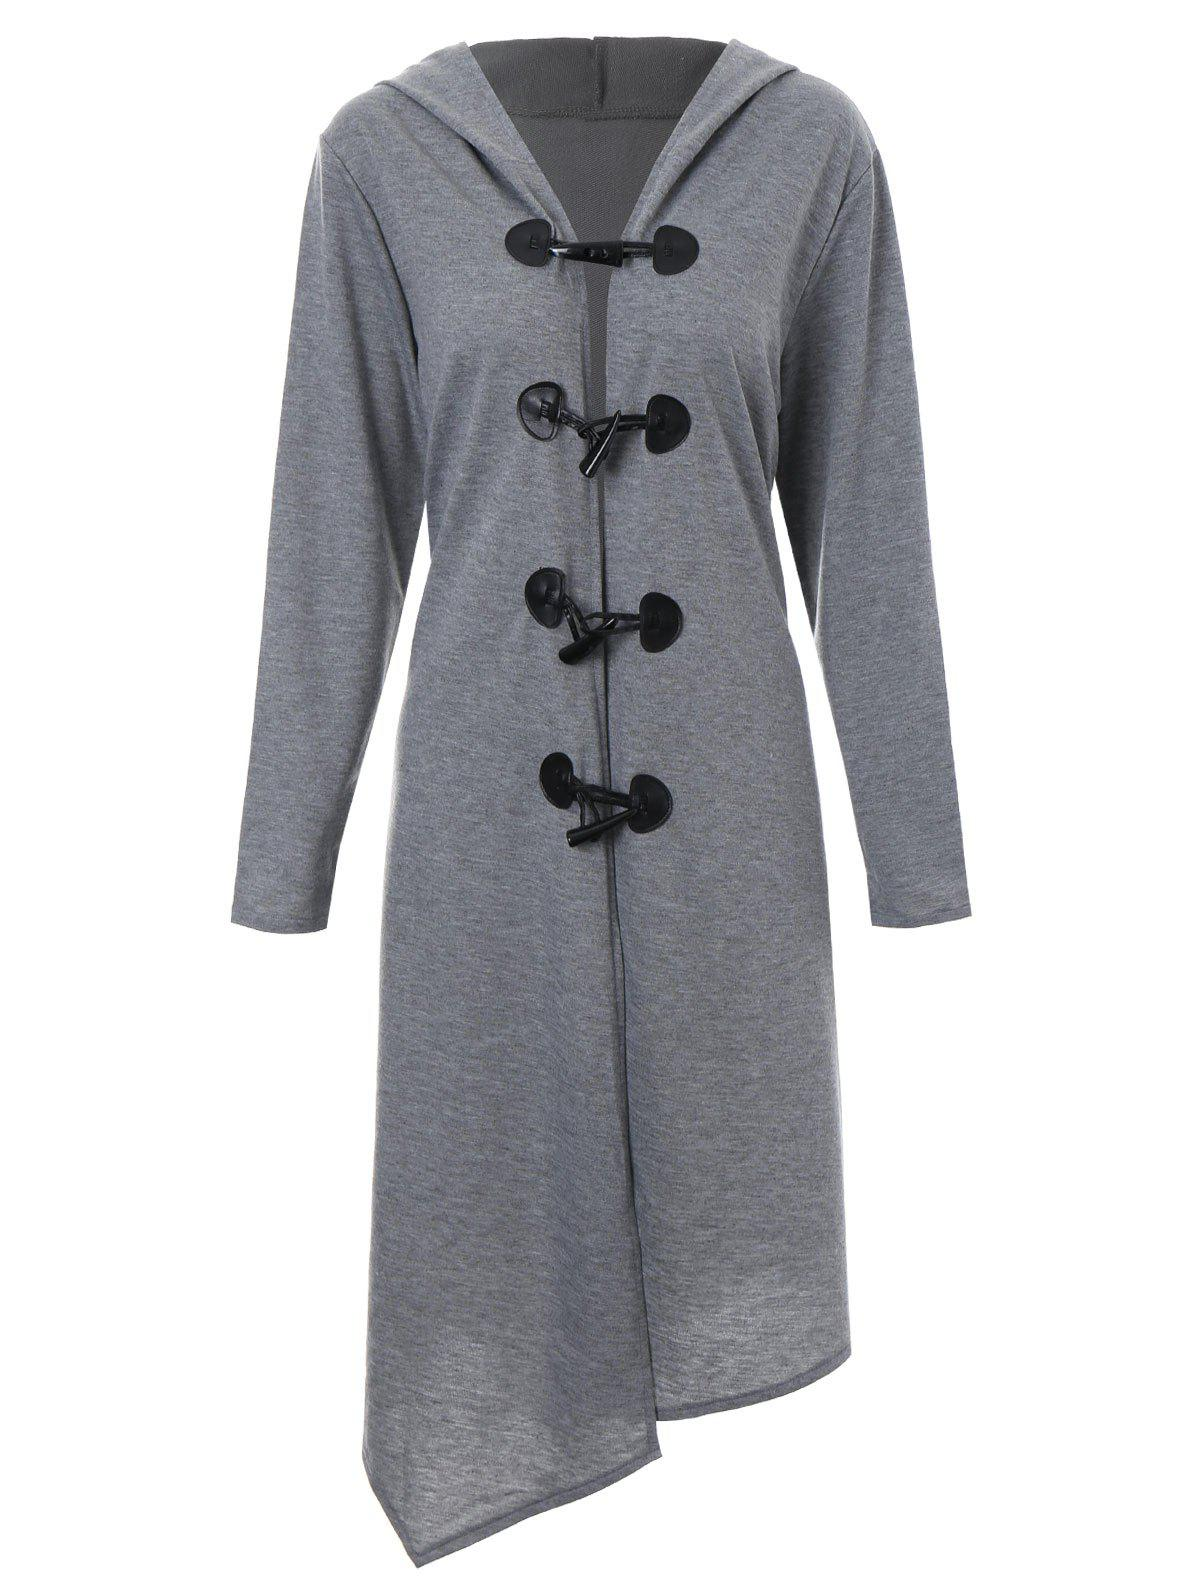 Plus Size Asymmetric Long Duffle Cloak Coat - GRAY 3XL